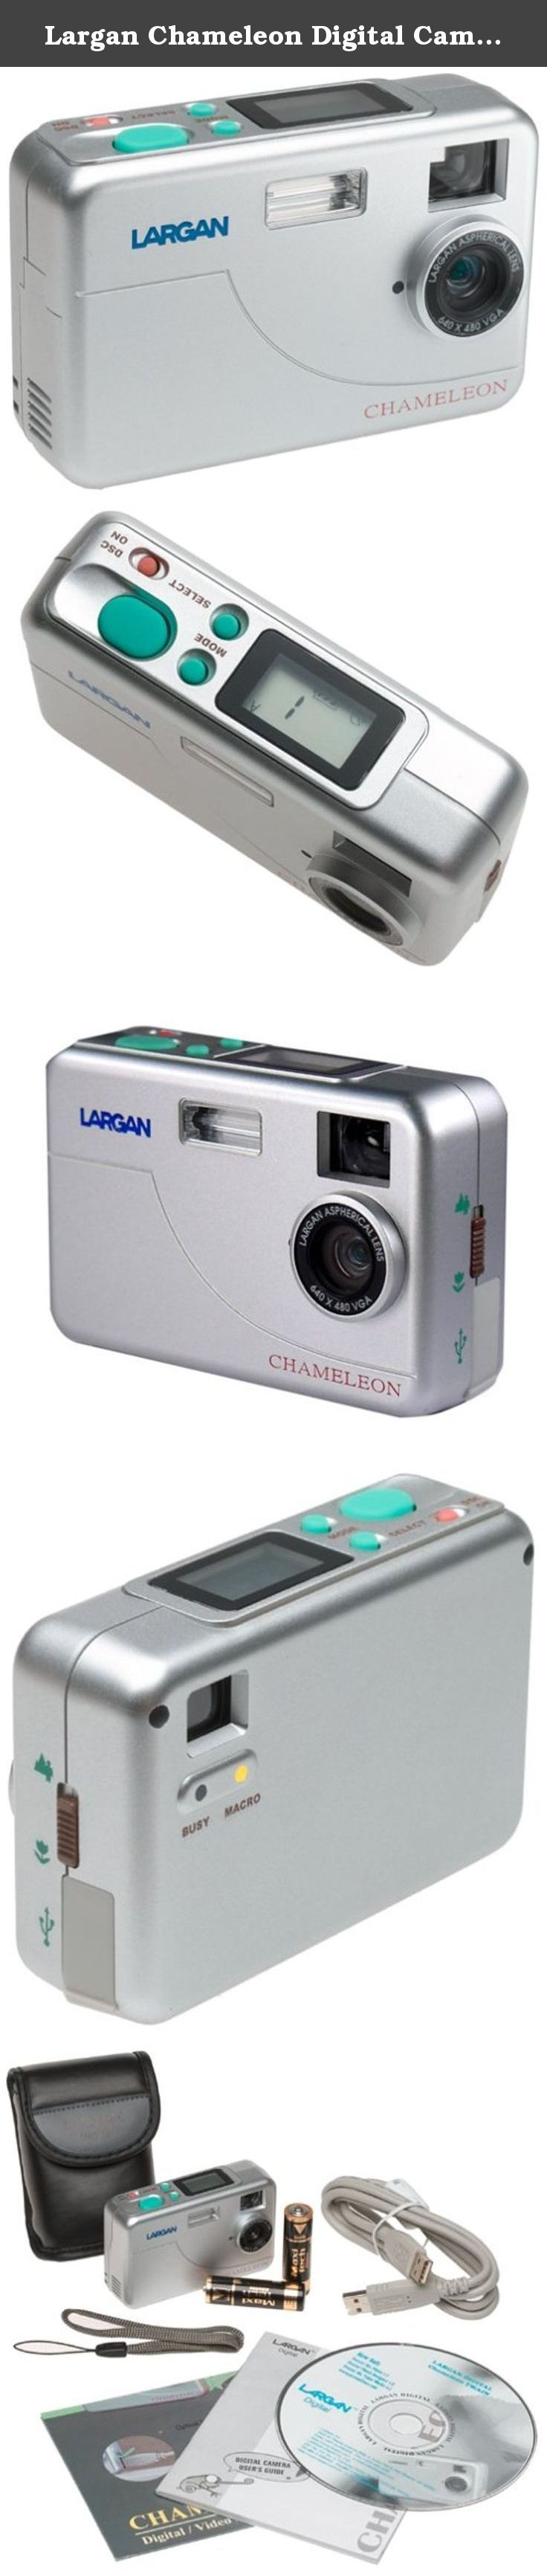 Largan Chameleon Digital Camera with Mr. Photo Software / Updates. Size of a credit card. Capture and edit photos (8 mb memory) with included Arcsoft Photo software. Macro mode for taking extreme close ups. All accessories included for a complete digital camera kit. Videoconference up to 30 frames per second.